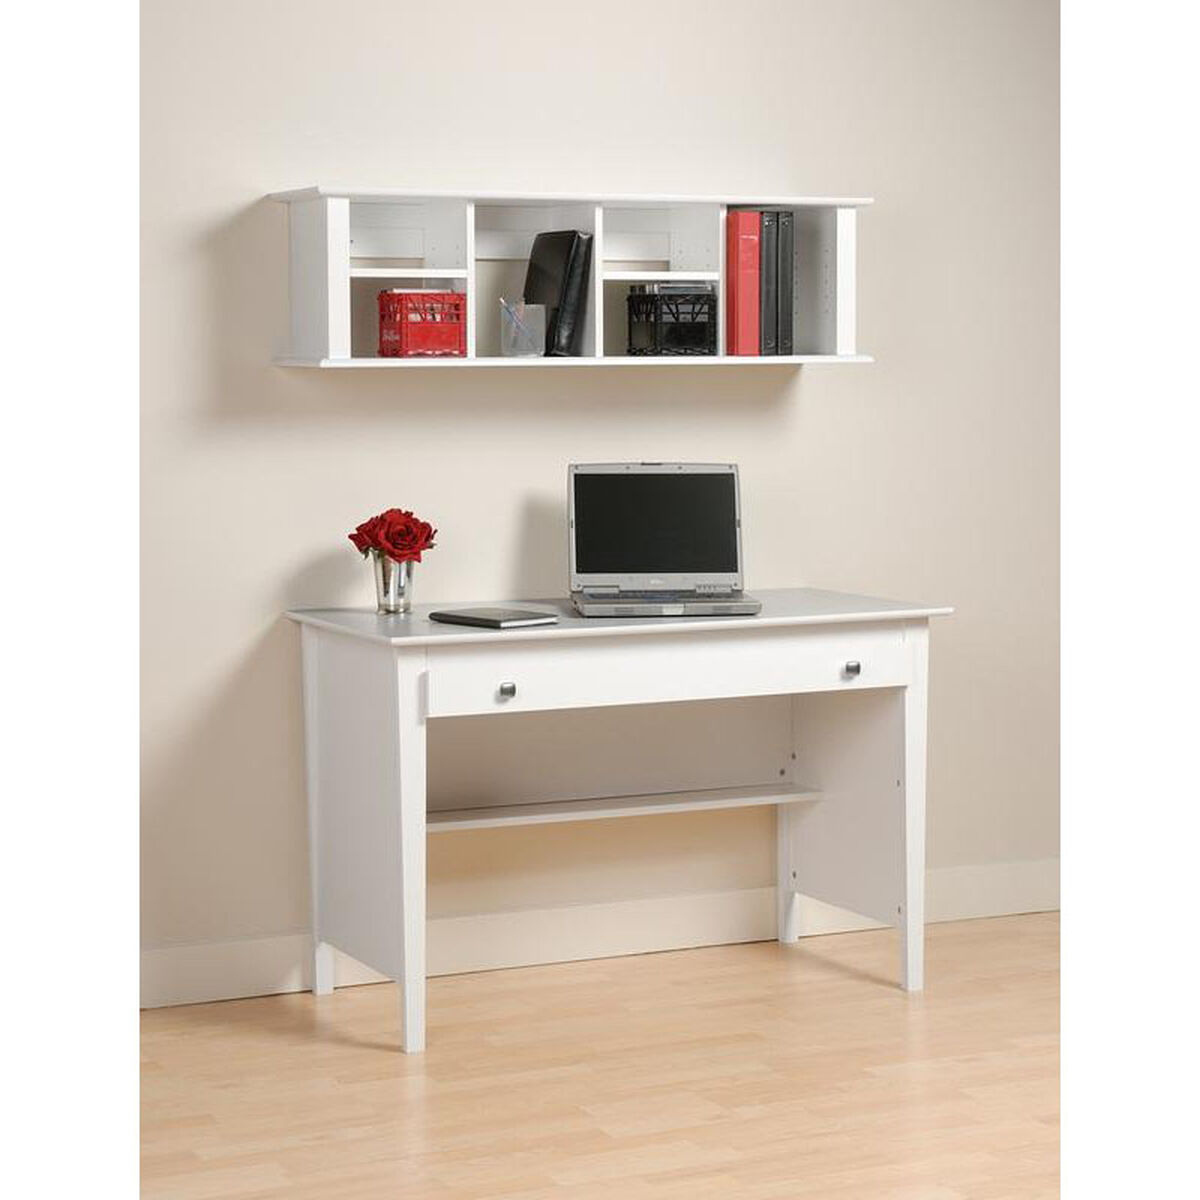 Our Wall Mounted 48 W Desk Hutch With 6 Open Storage Compartments White